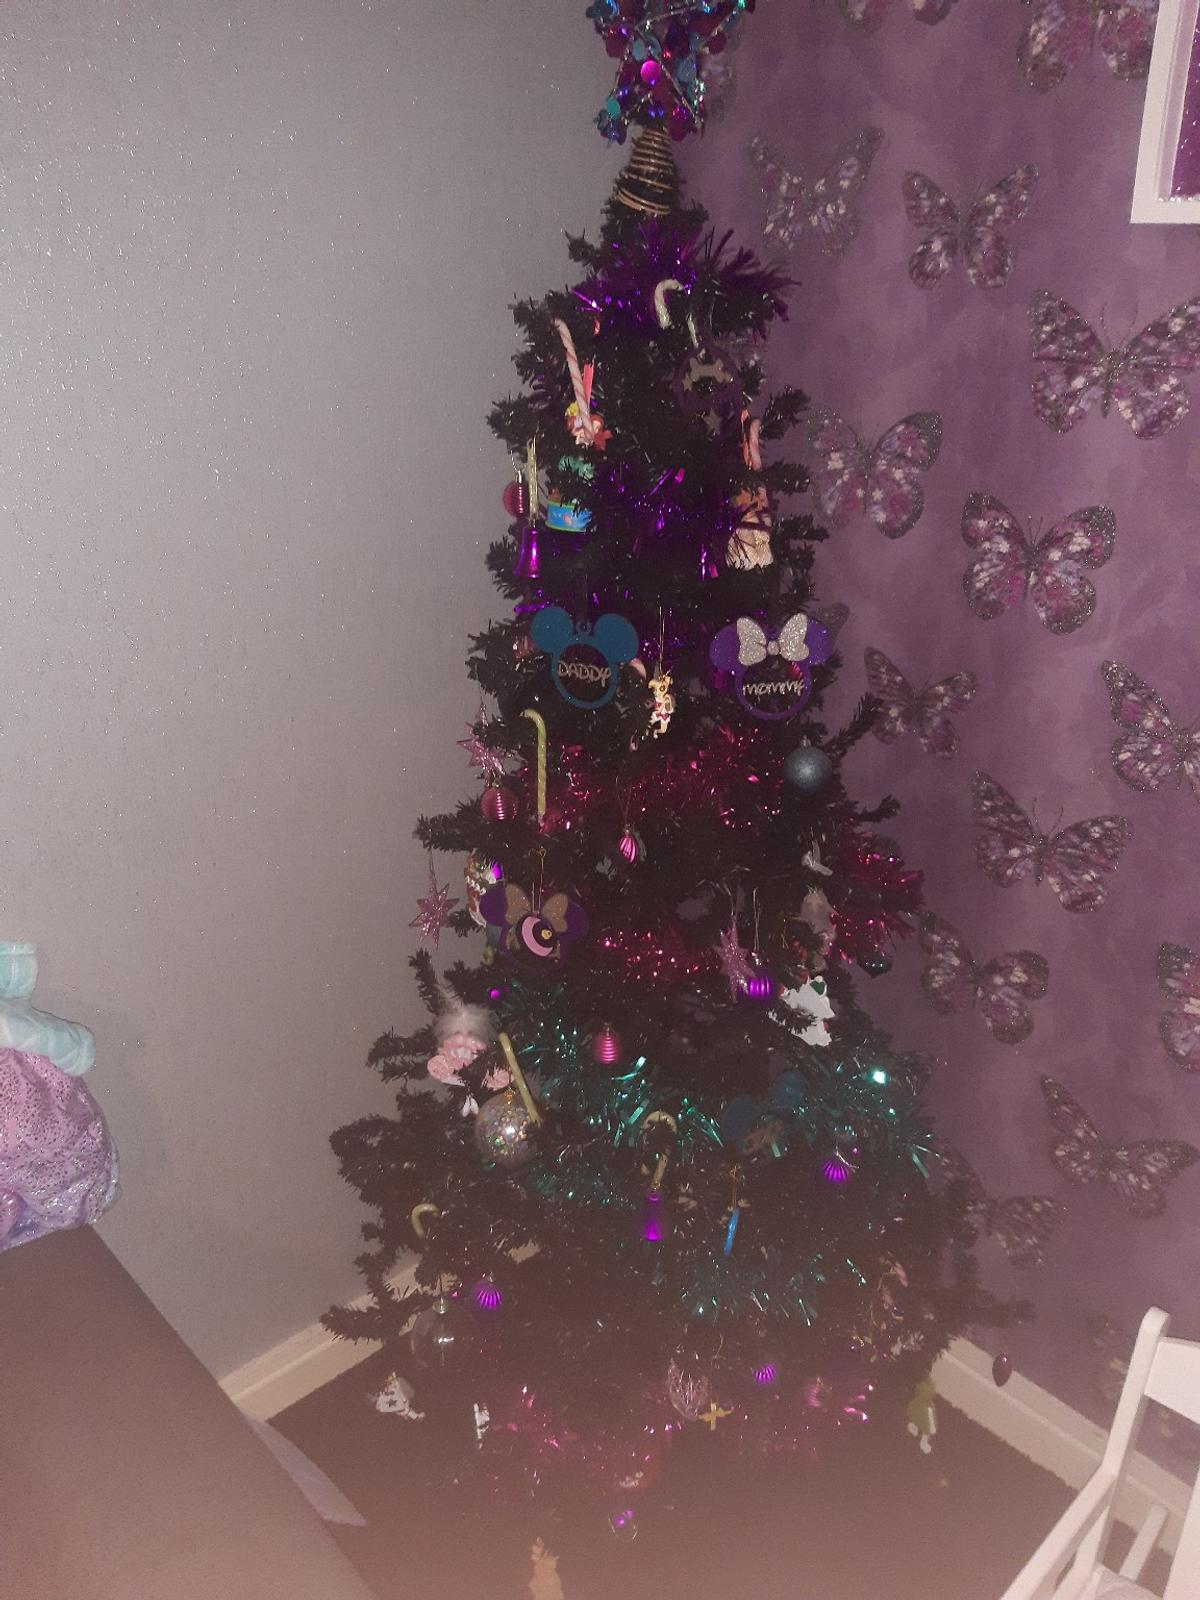 Black Christmas Tree In Wv14 Sandwell For 20 00 For Sale Shpock